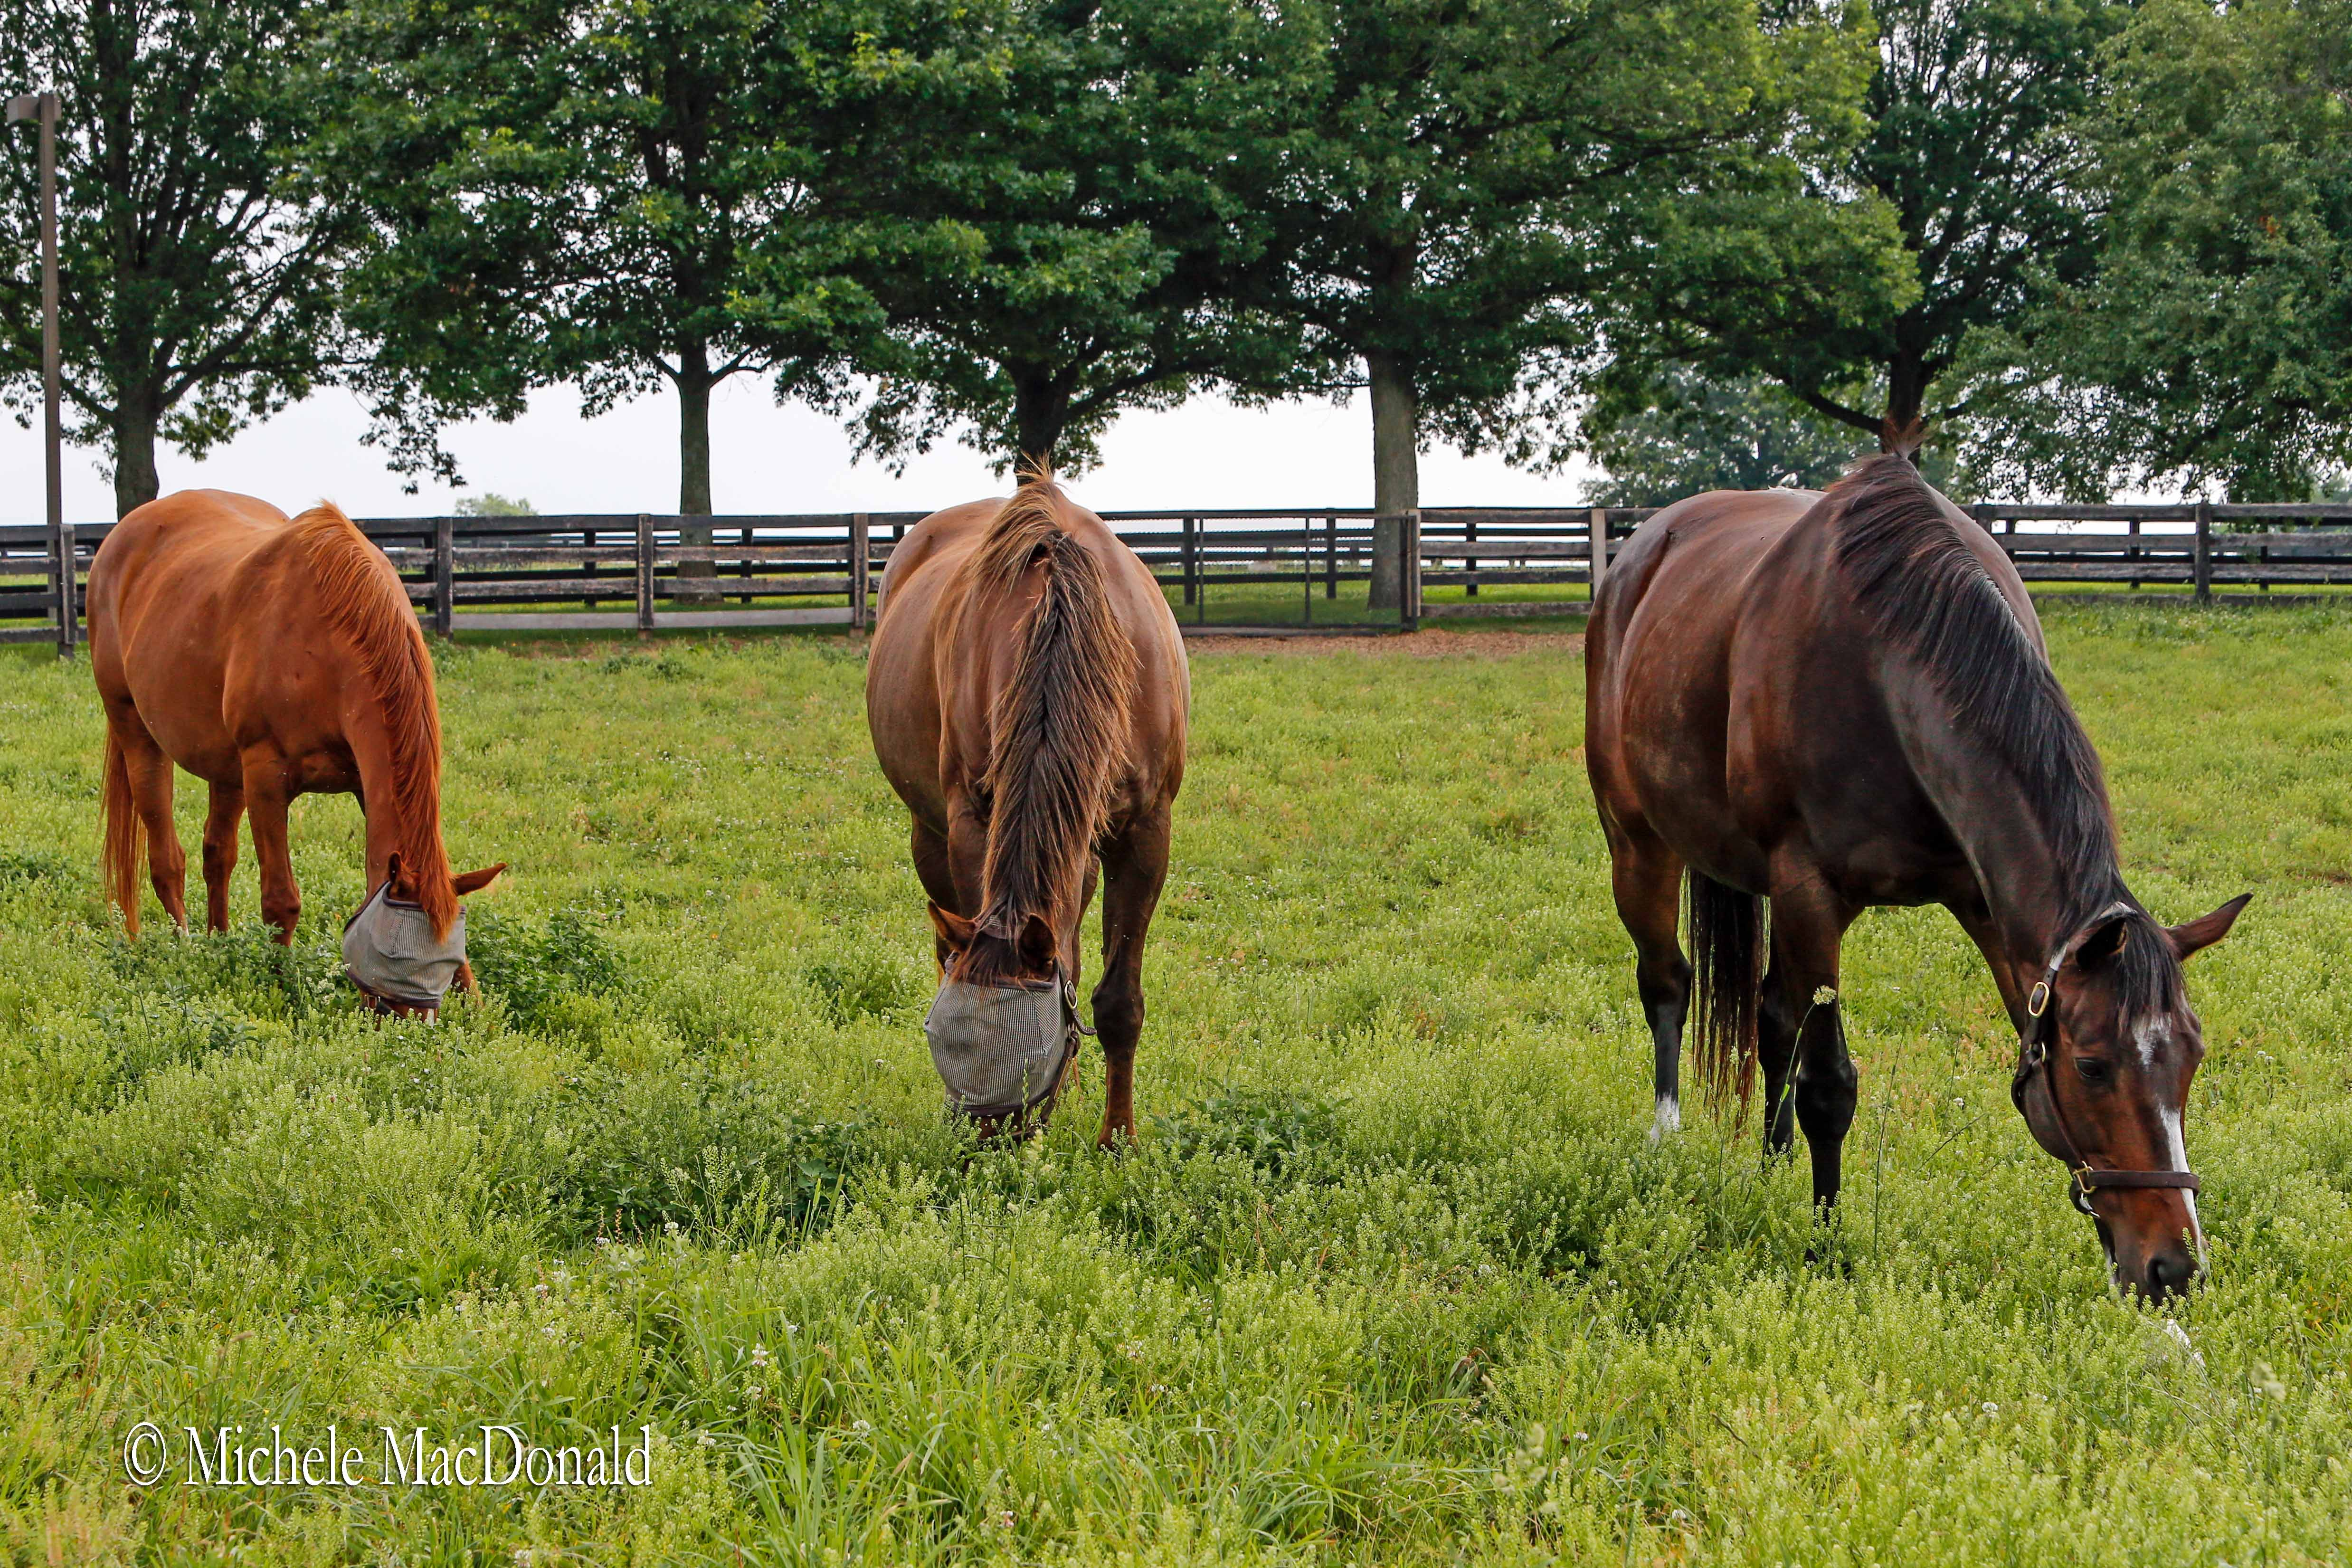 Leisure companions: 'Rachel loves her friends in the paddock, so I think she's enjoying life,' says Barbara Banke. Photo: Michele MaDonald